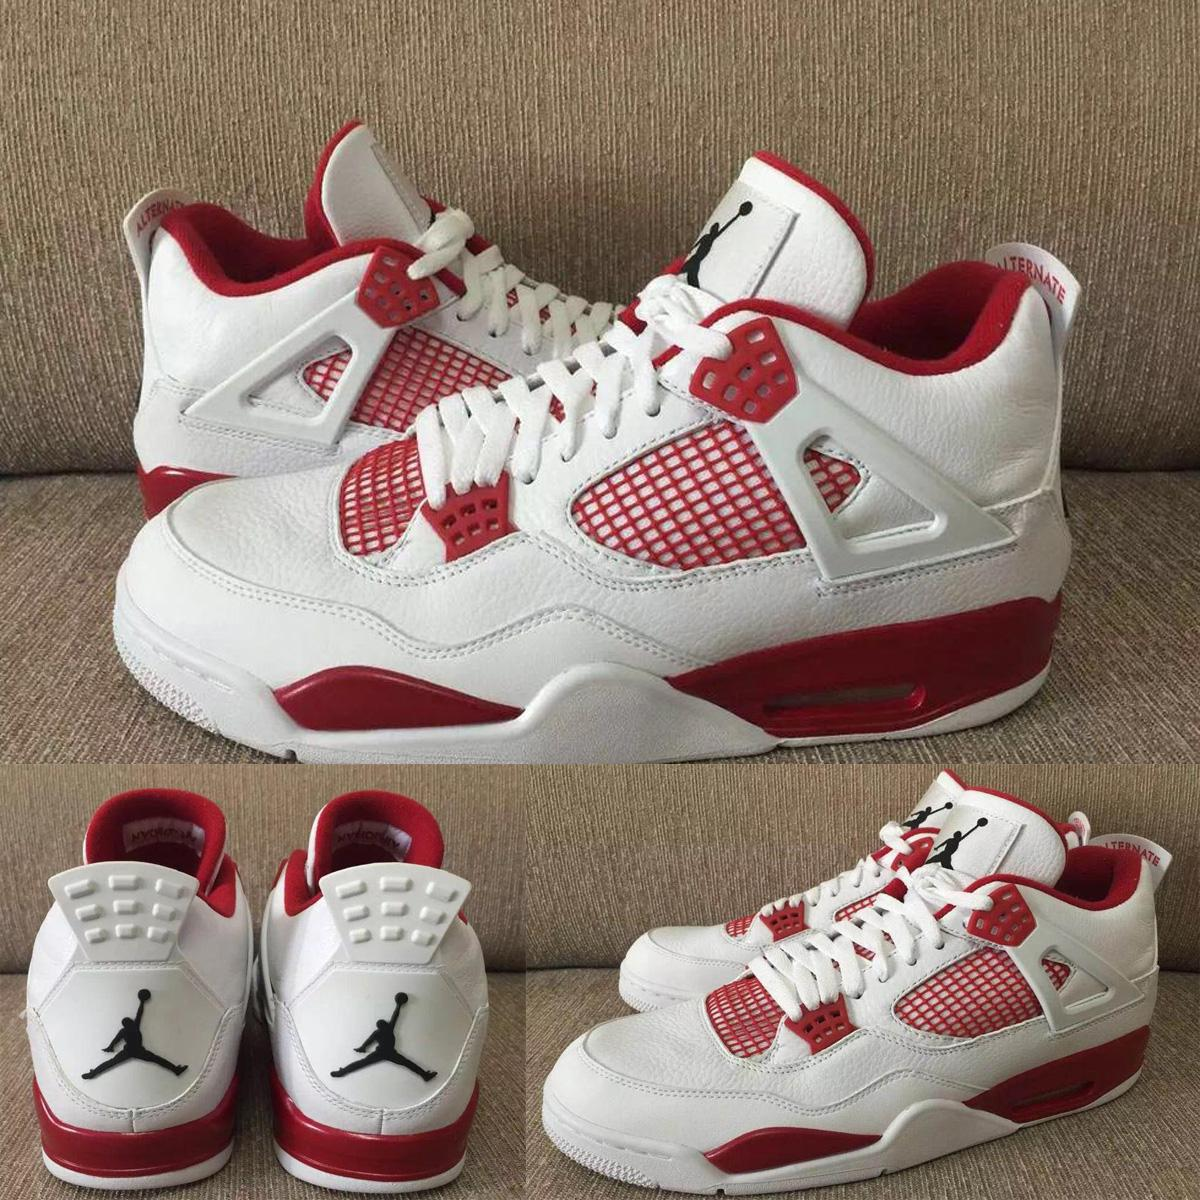 Nike Air Jordan 4 Iv Retro Alternate 89 White Black Gym Red Mens Basketball  Shoes Authentic Men Sneakers 308497 106 Size 8 13 Basketball Mens Shoes  From ... ac58436d4e